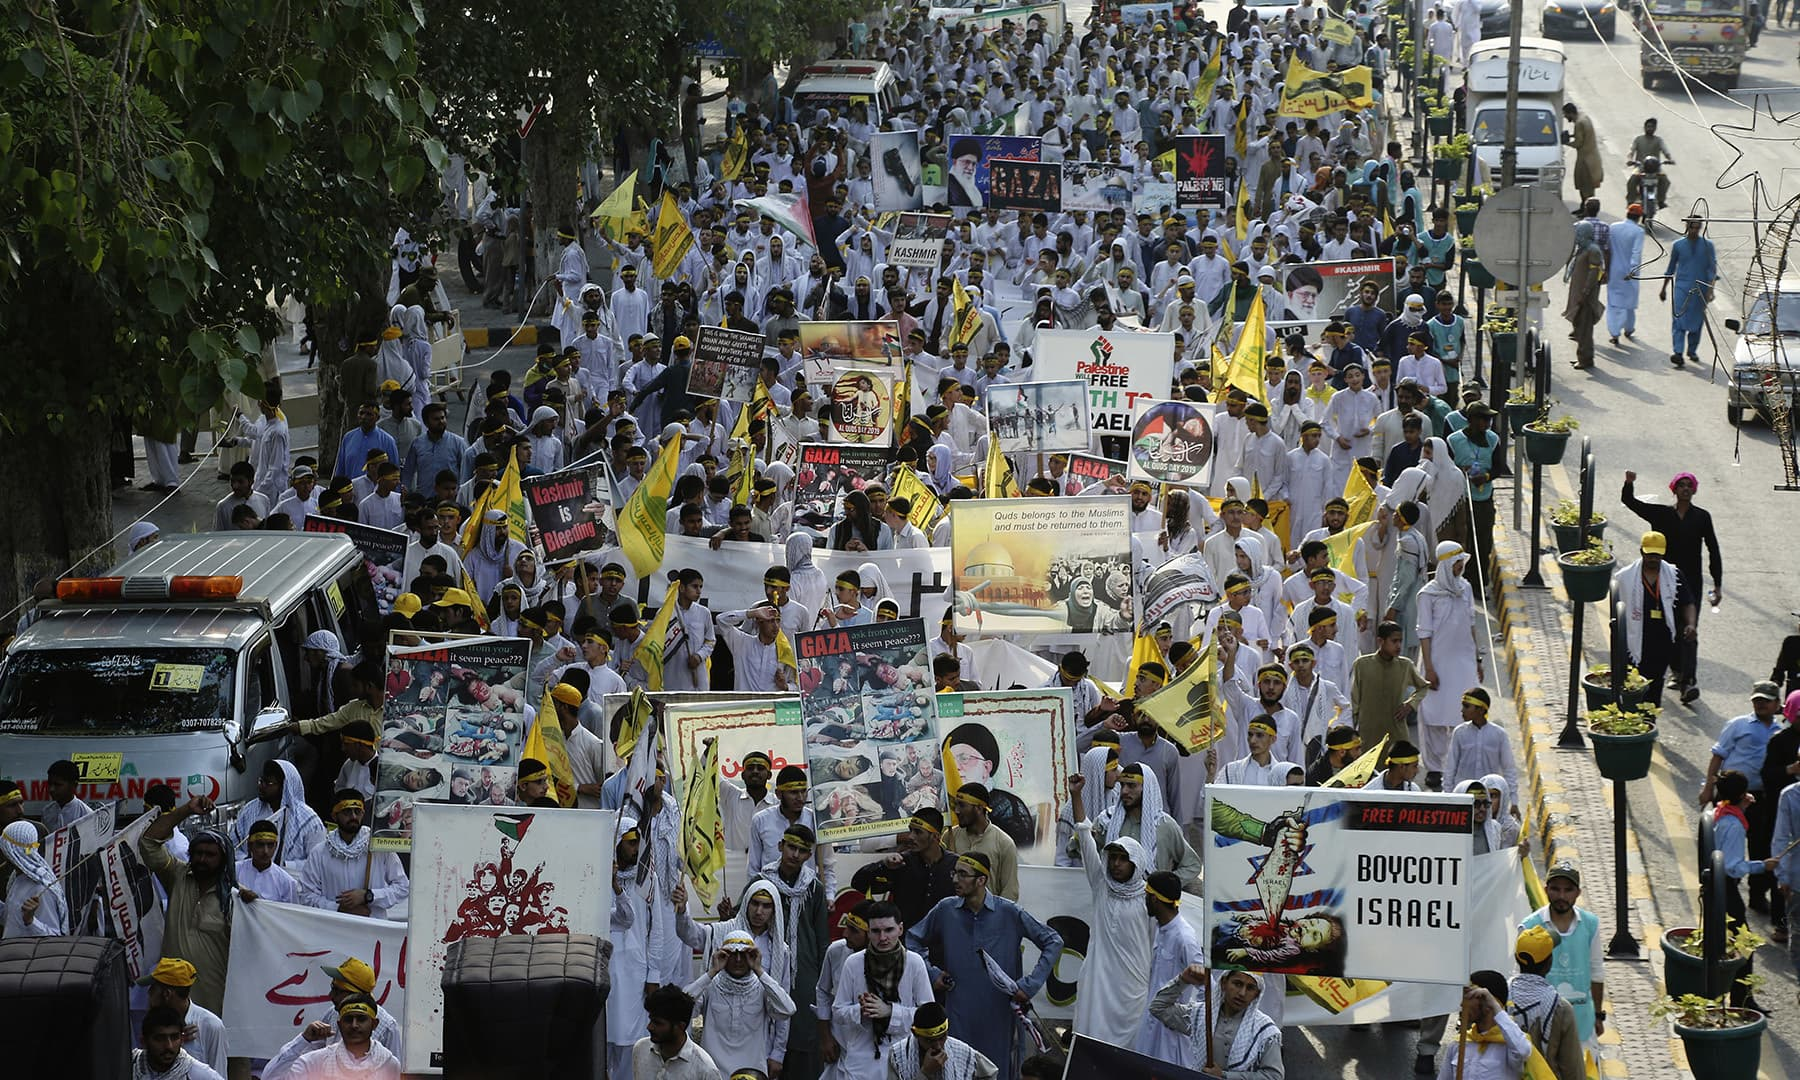 Protesters march down a street during al-Quds Day in Lahore on Friday. — AP